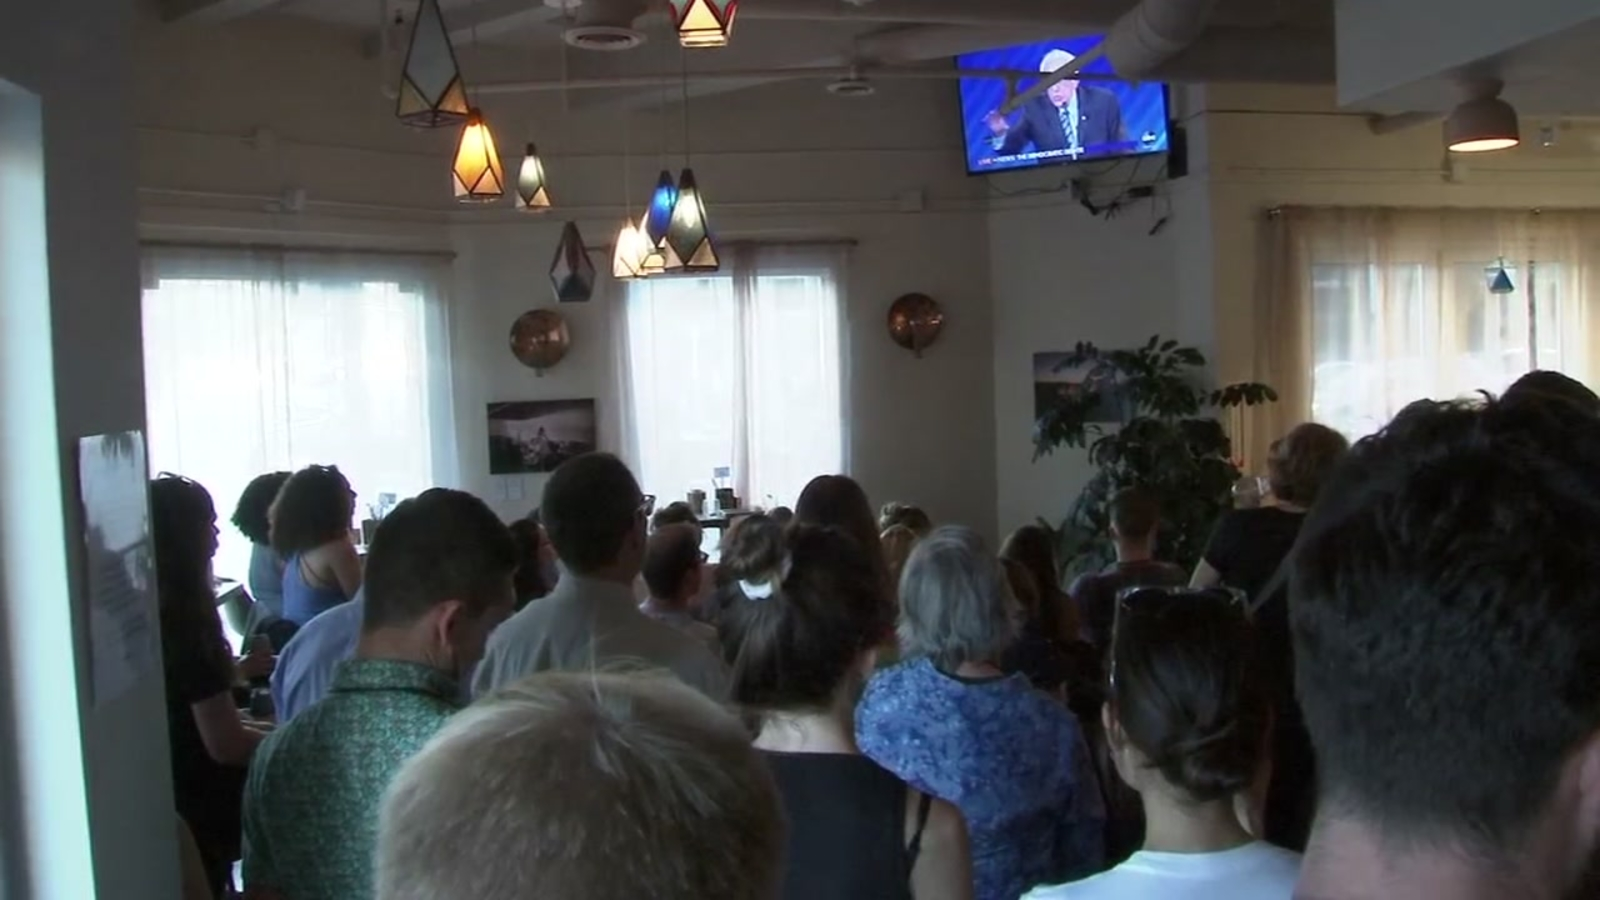 Democratic debate leaves many with mixed reactions at SF watch party